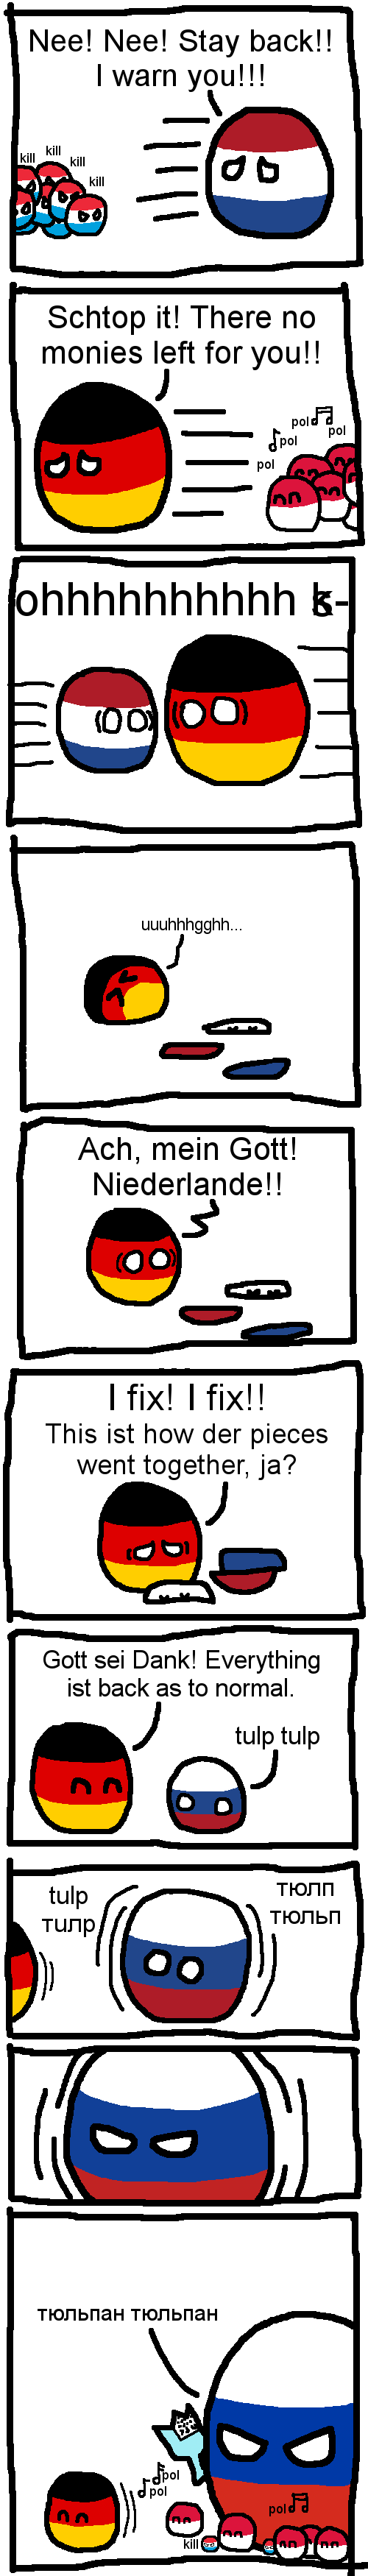 Germany Gets it Wrong